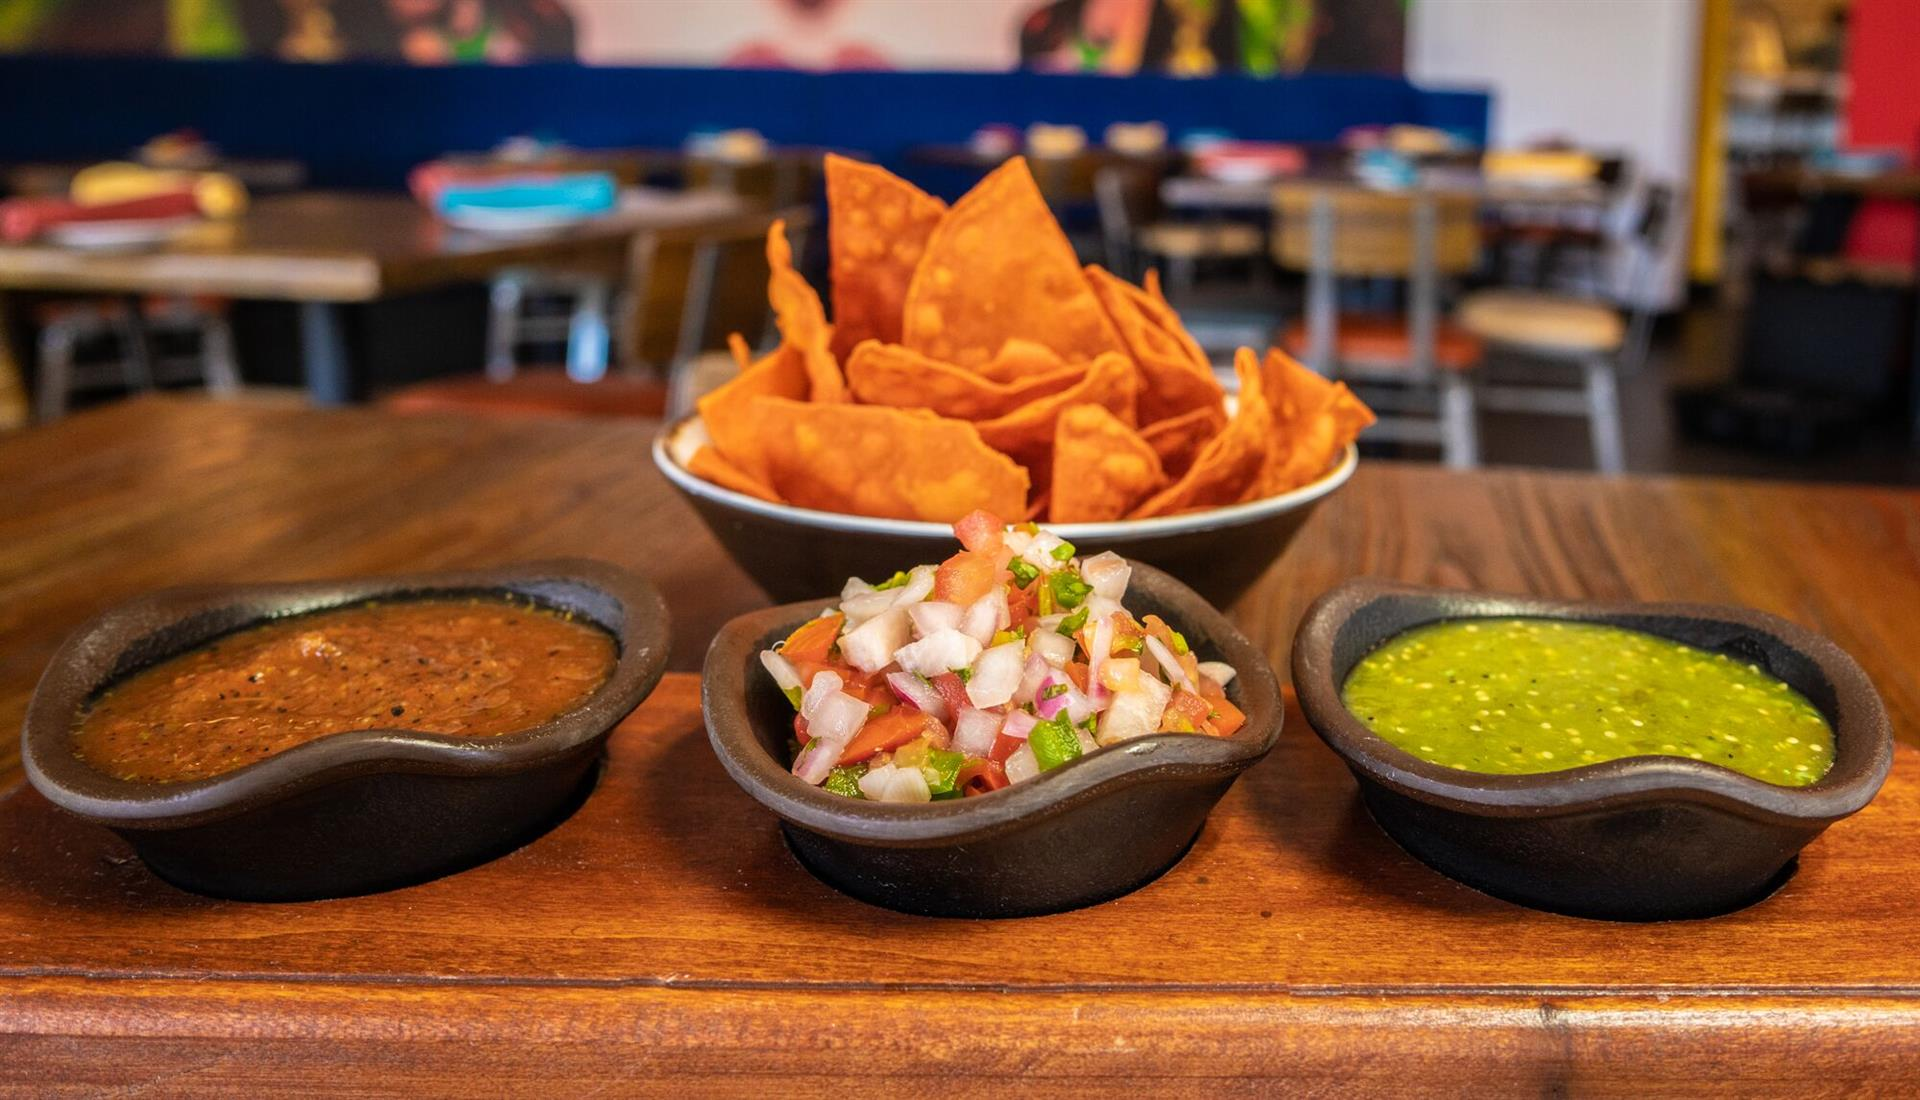 trio of salsa and chips - Rico de gallo, salsa verde & salsa roja